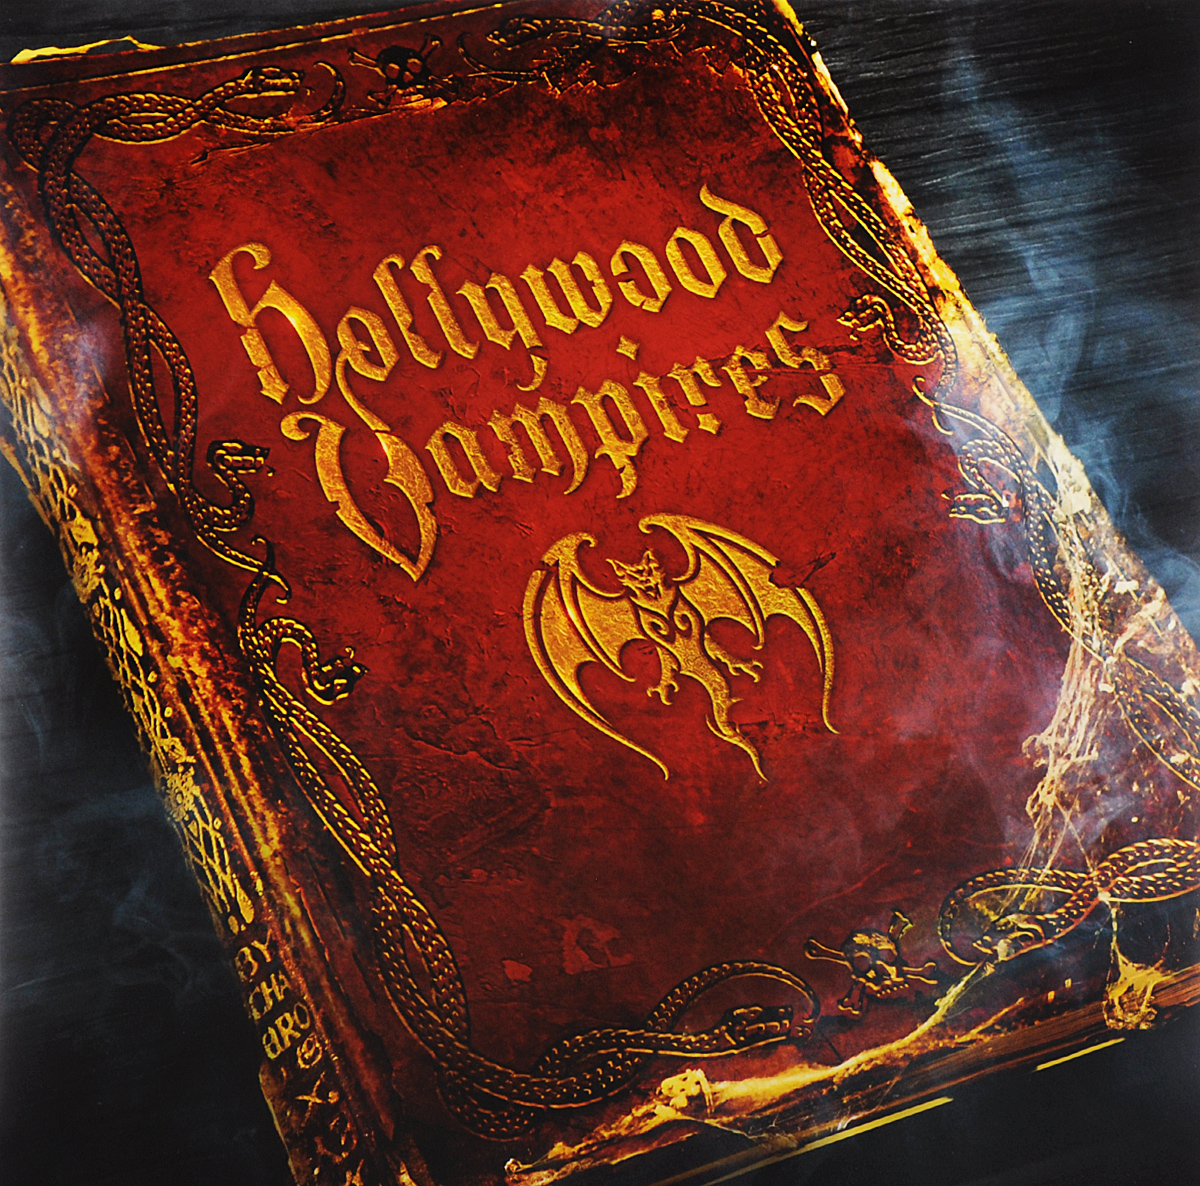 Hollywood Vampires Hollywood Vampires. Hollywood Vampires (2 LP) hollywood vampires hollywood vampires hollywood vampires